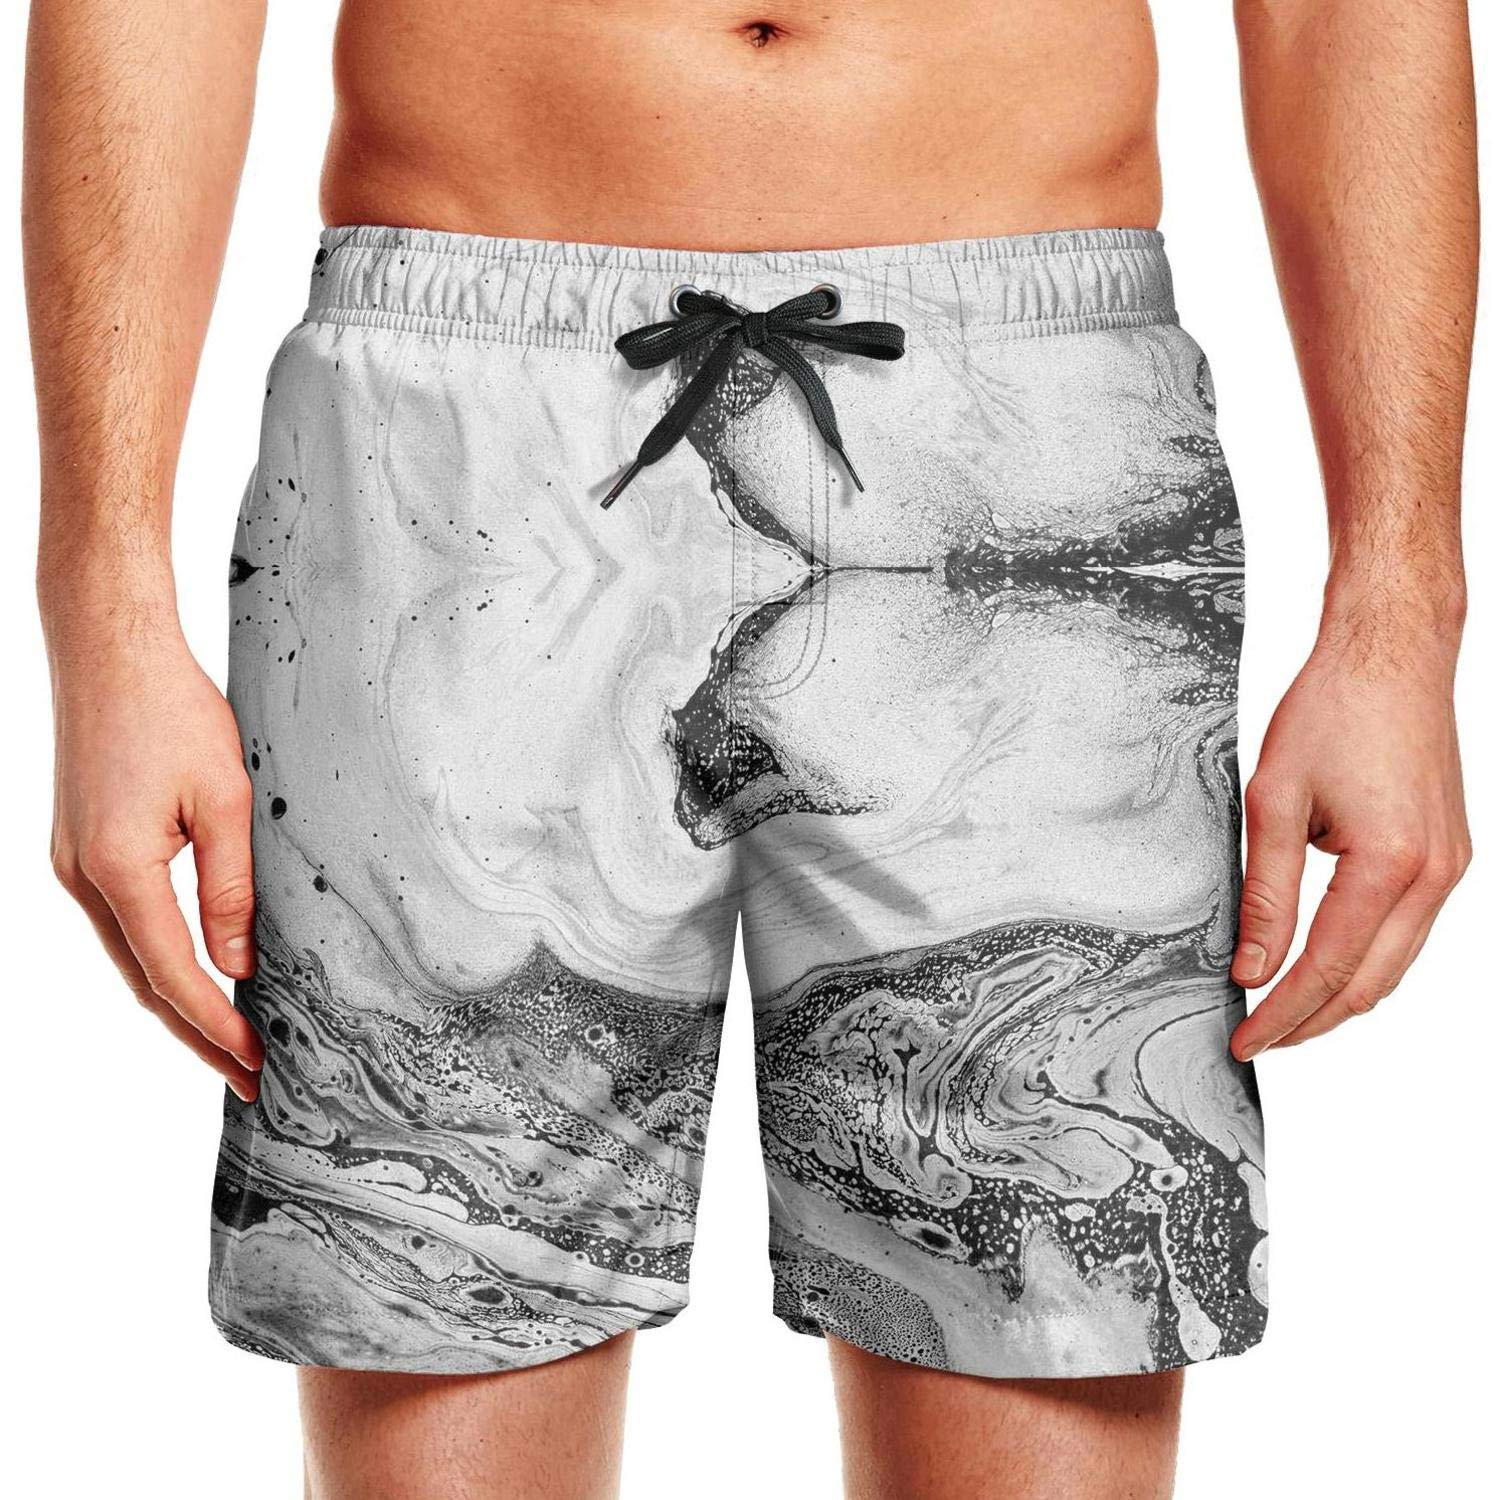 Stretch Quick-Dry Classic Comfortable Fashion Mens Printed Beach Pants Swim Trunks Shorts Walking Black and White Marble Abstract Loose